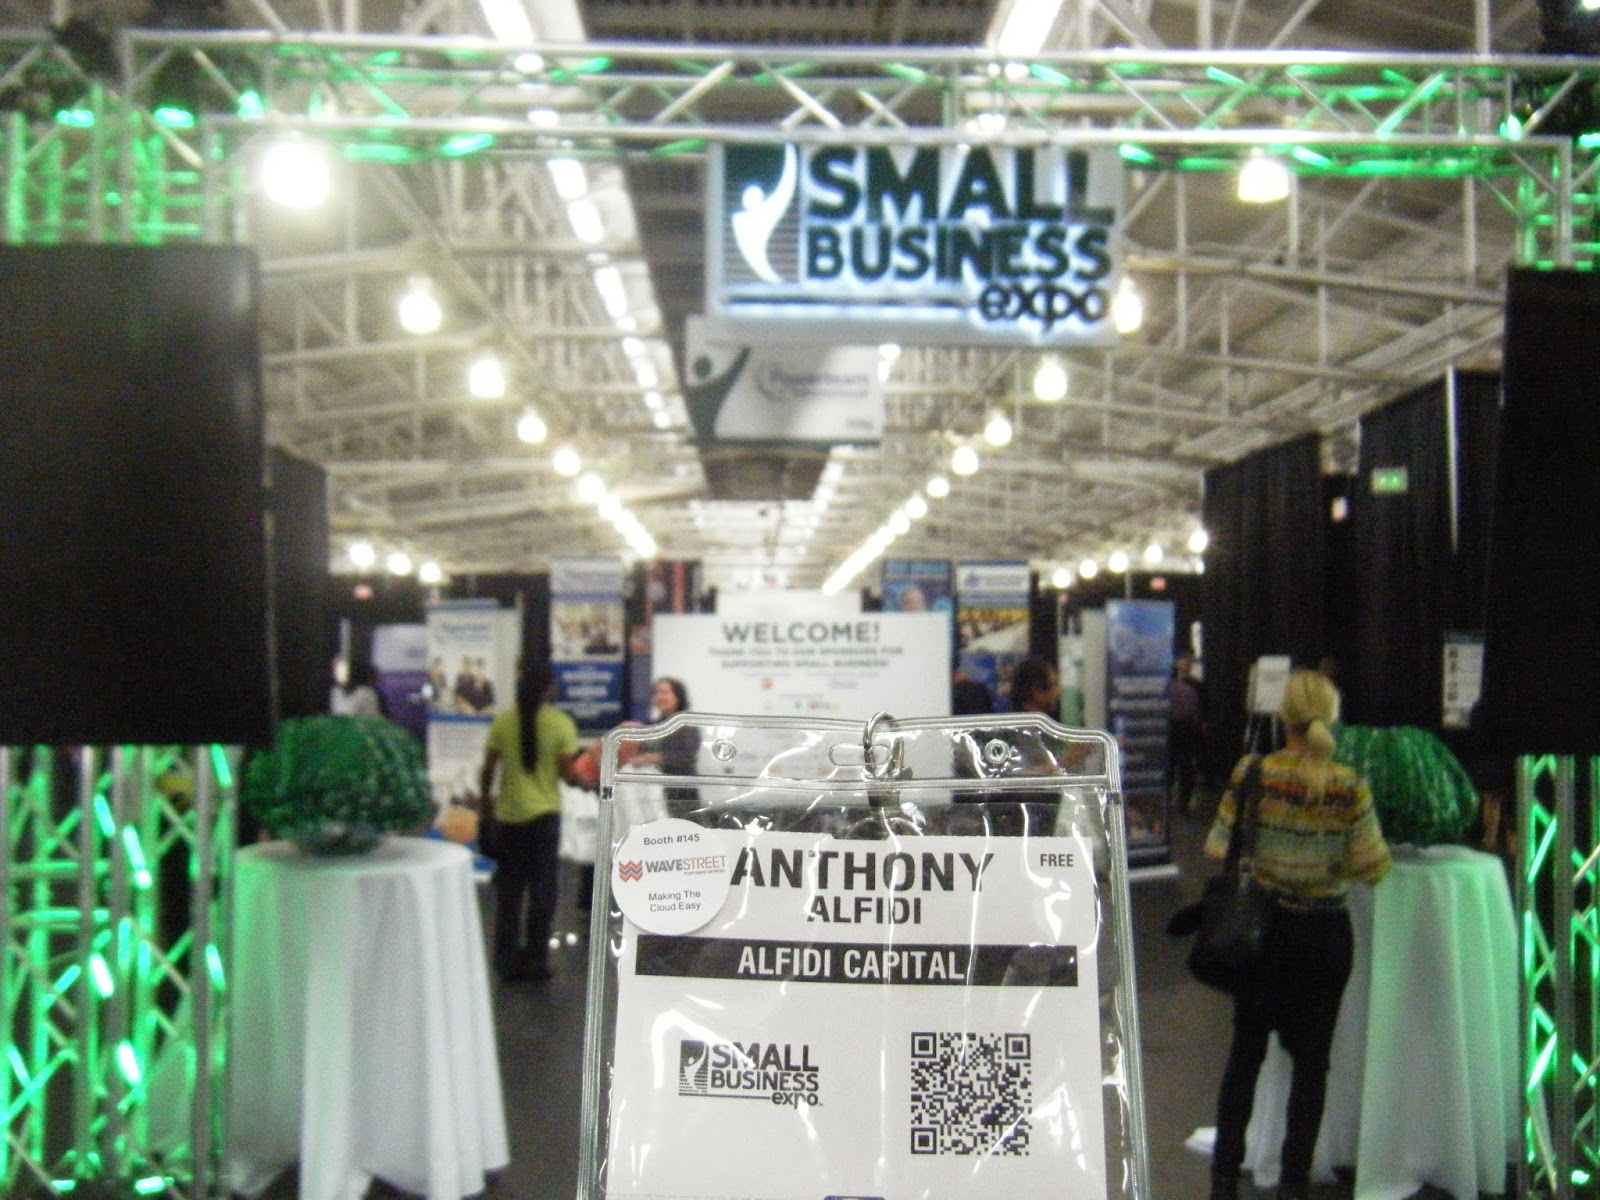 Alfidi Capital Blog: Wasting Time at the Small Business Expo